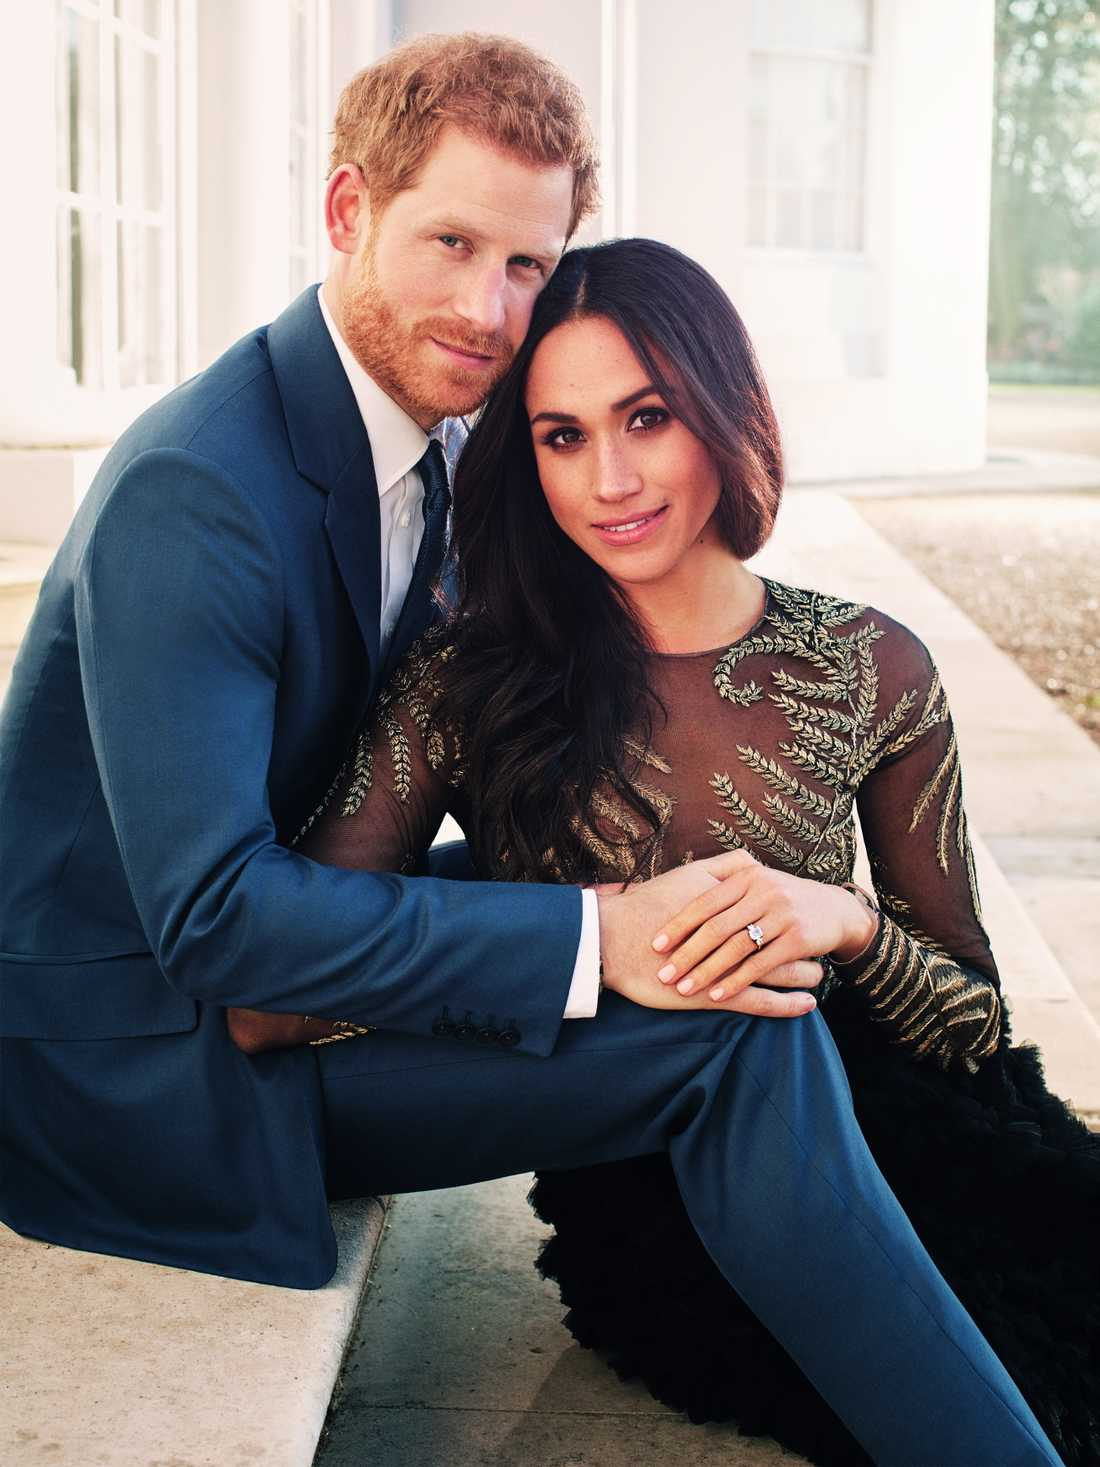 Prins Harry och Meghan Markle.